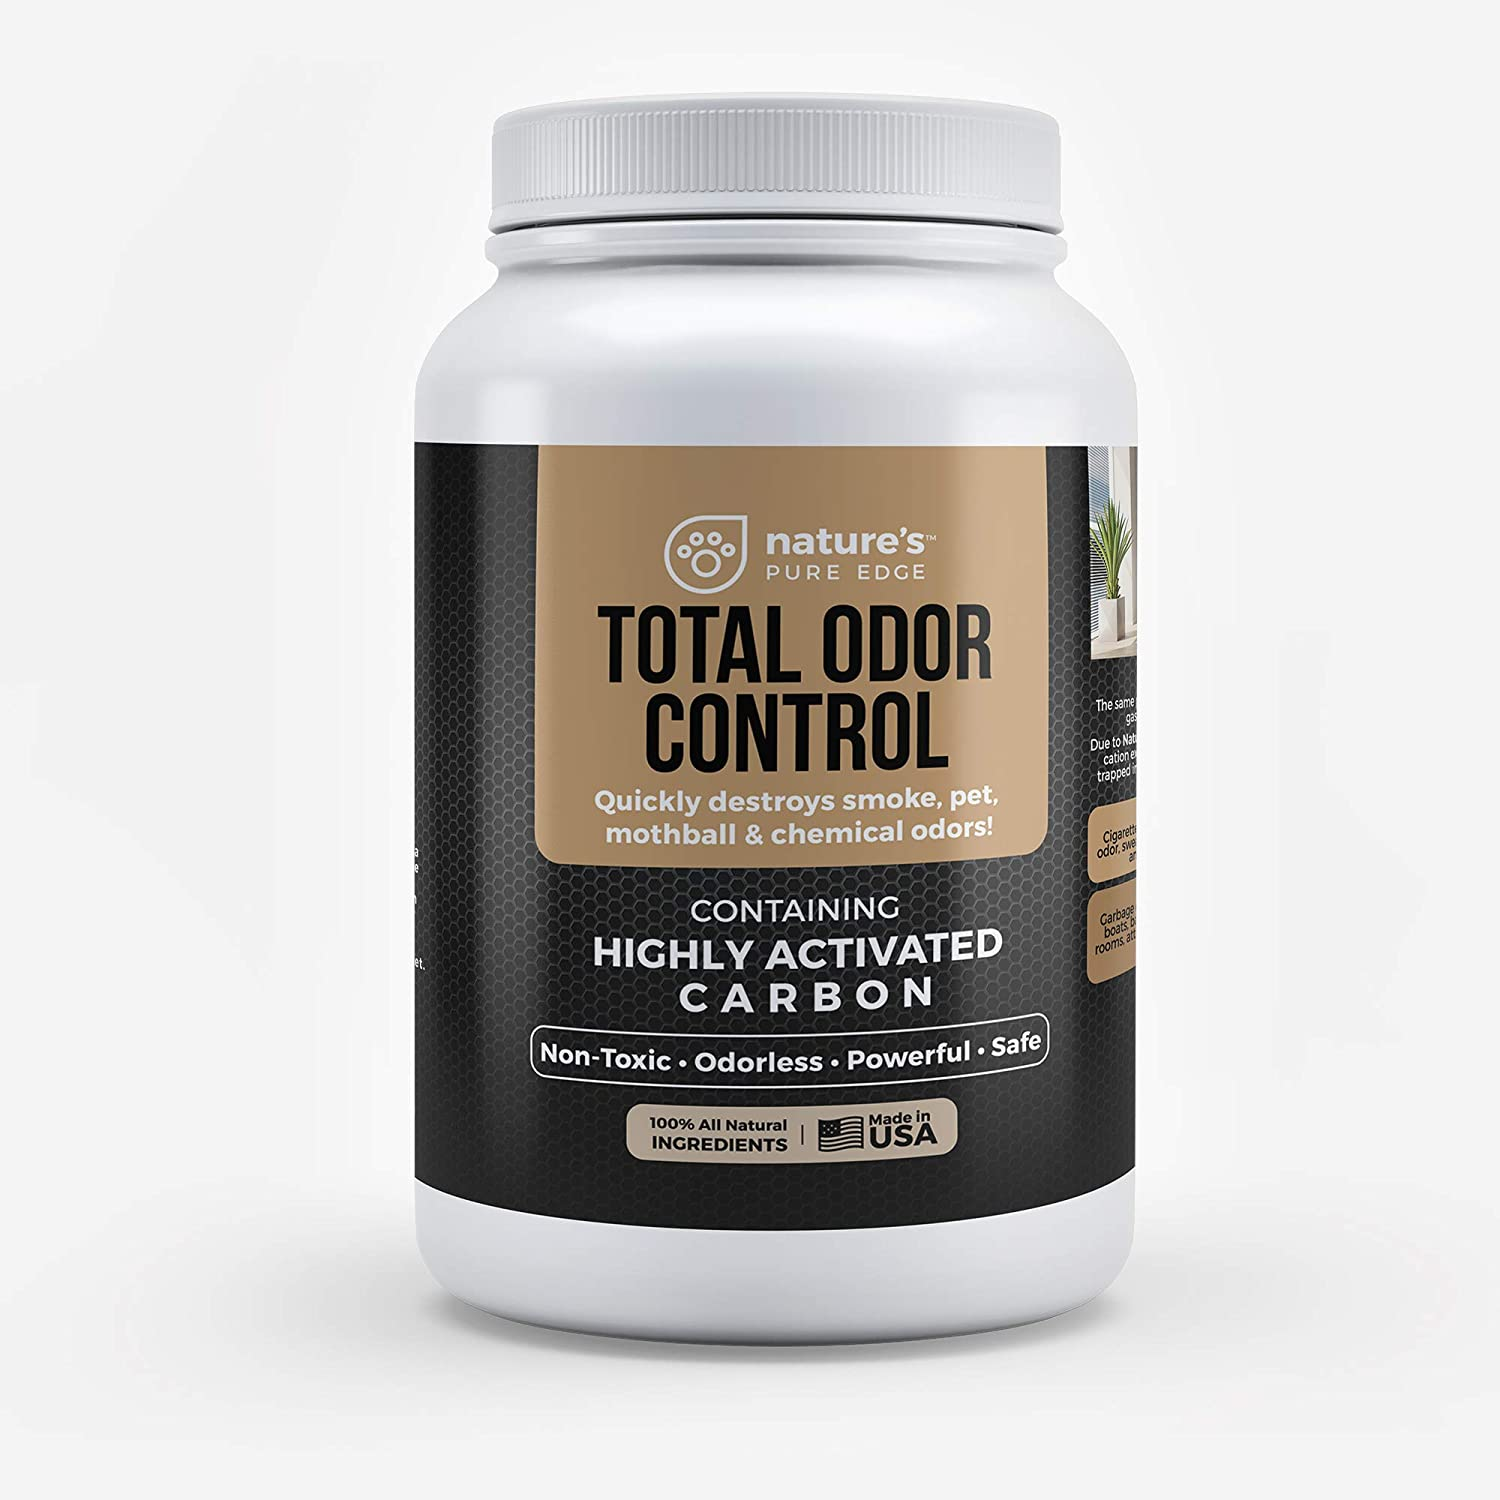 Total Odor Control with 7 Refillable Natural Deodorizing Bags. Fragrance Free Odor Absorber. Closet Freshener, Home Air Odor Eliminating Activated Carbon Charcoal Blend with reusable Bags.